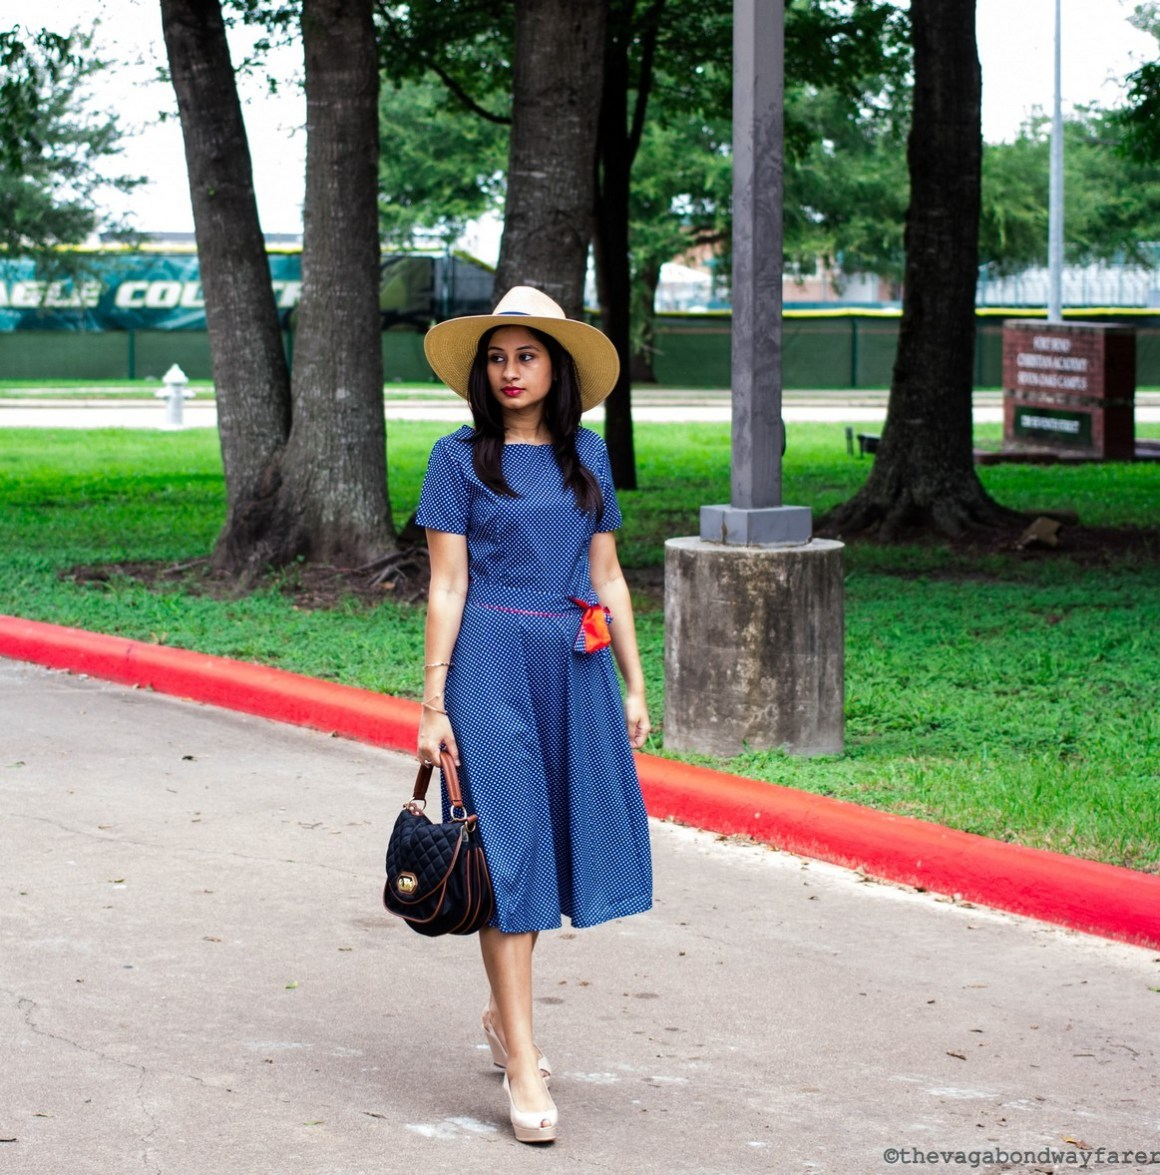 Romwe Polka Dot Dress, Steve Madden bag, Zara wedges, Mango hat - The Vagabond Wayfarer